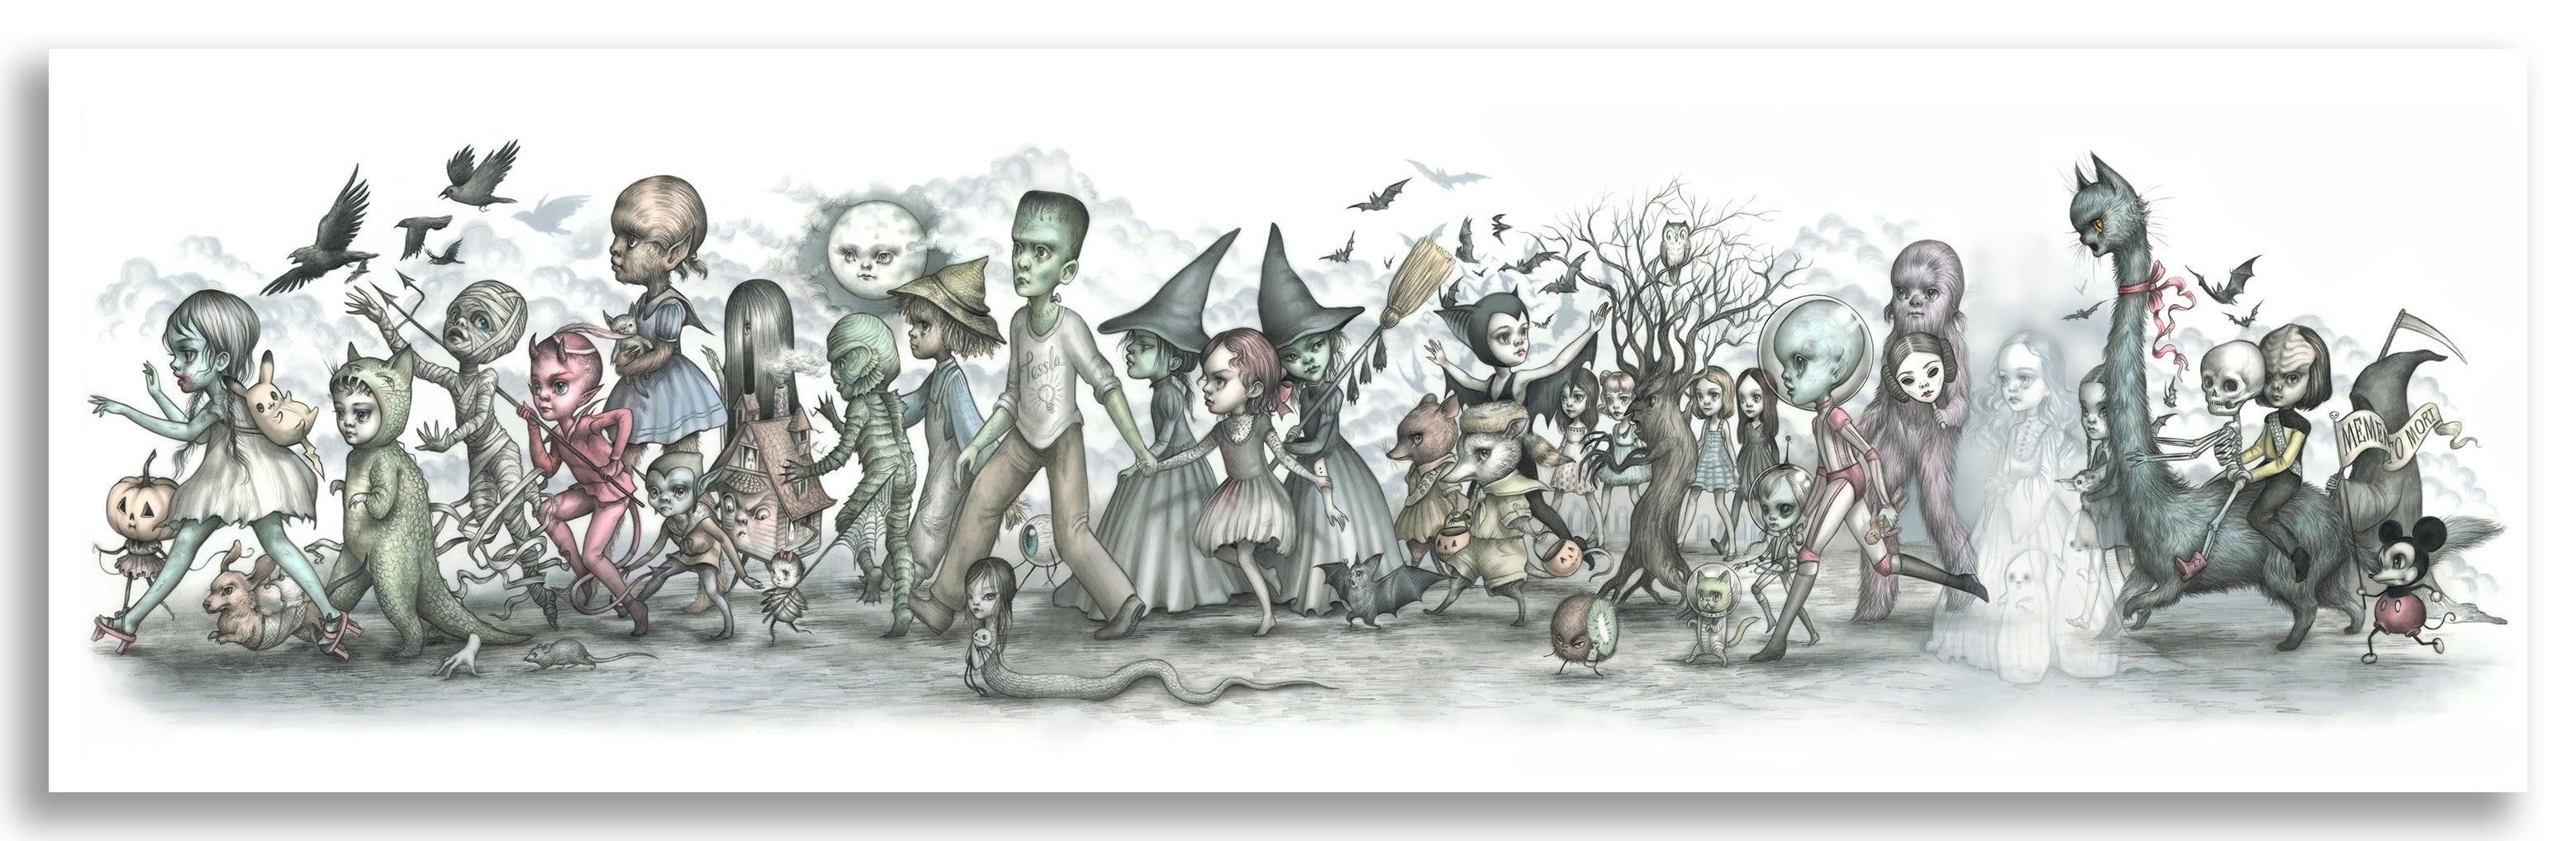 "Mab Graves, ""The Monsters Parade"""